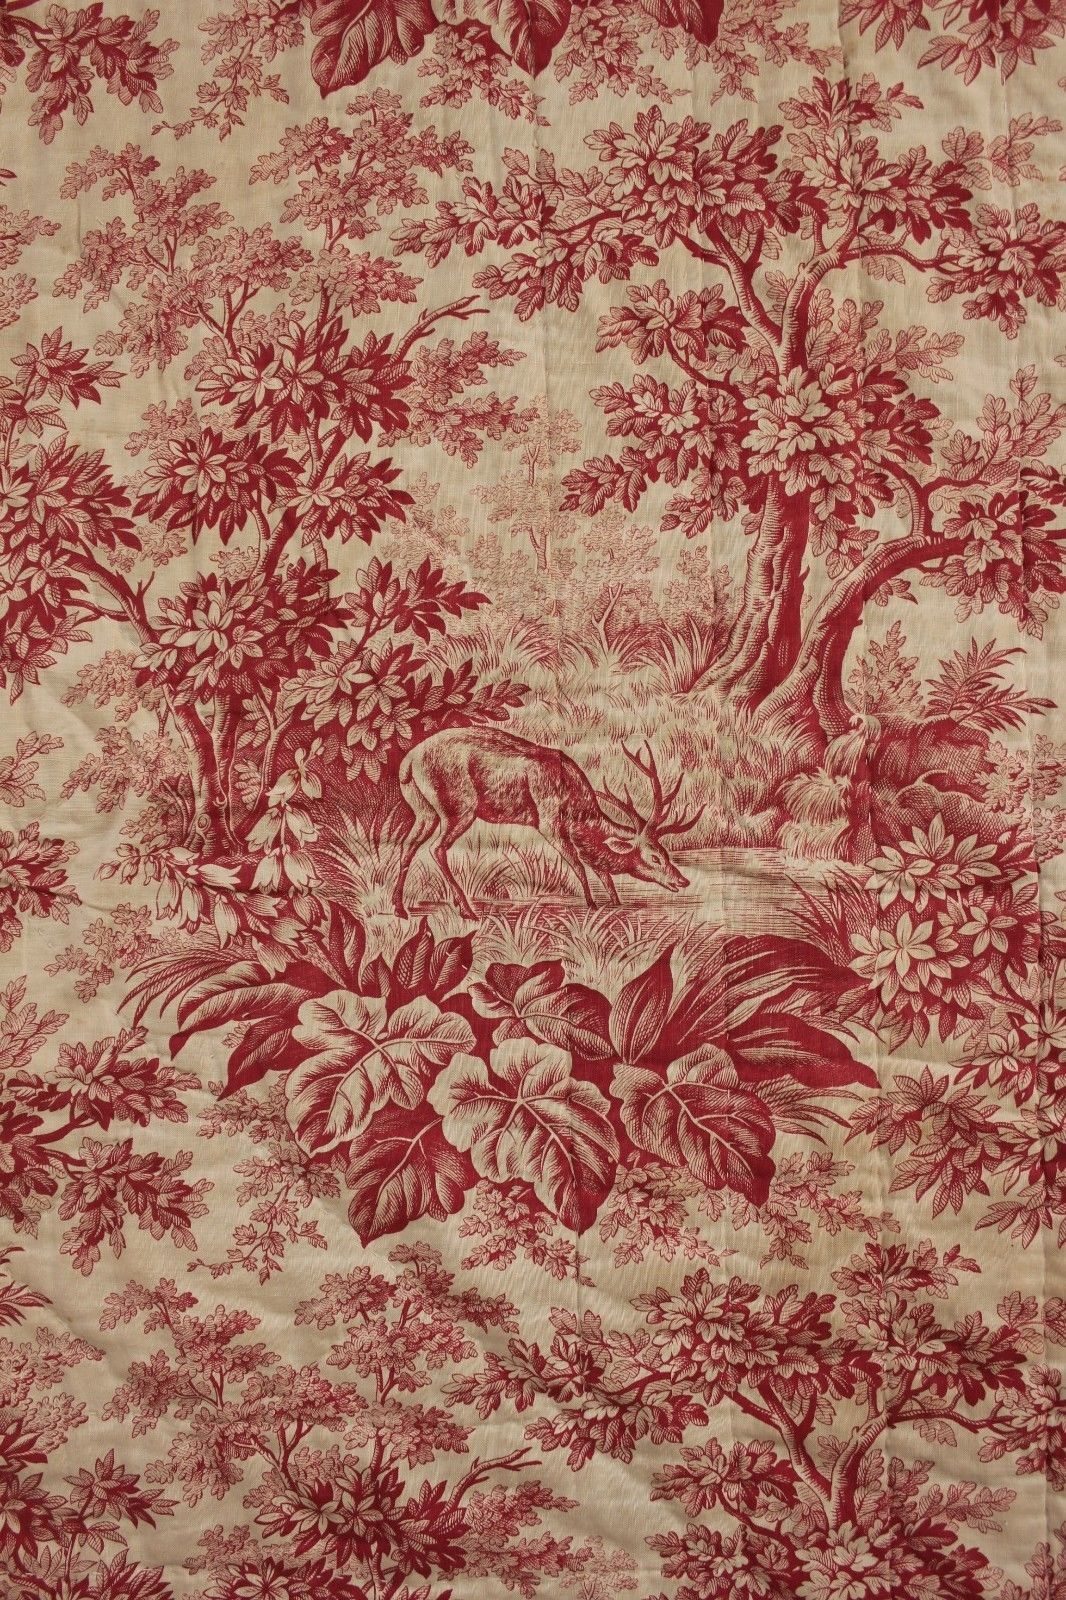 antique french pique provence quilt c1870 red stag toile de jouy fabric textile toile. Black Bedroom Furniture Sets. Home Design Ideas